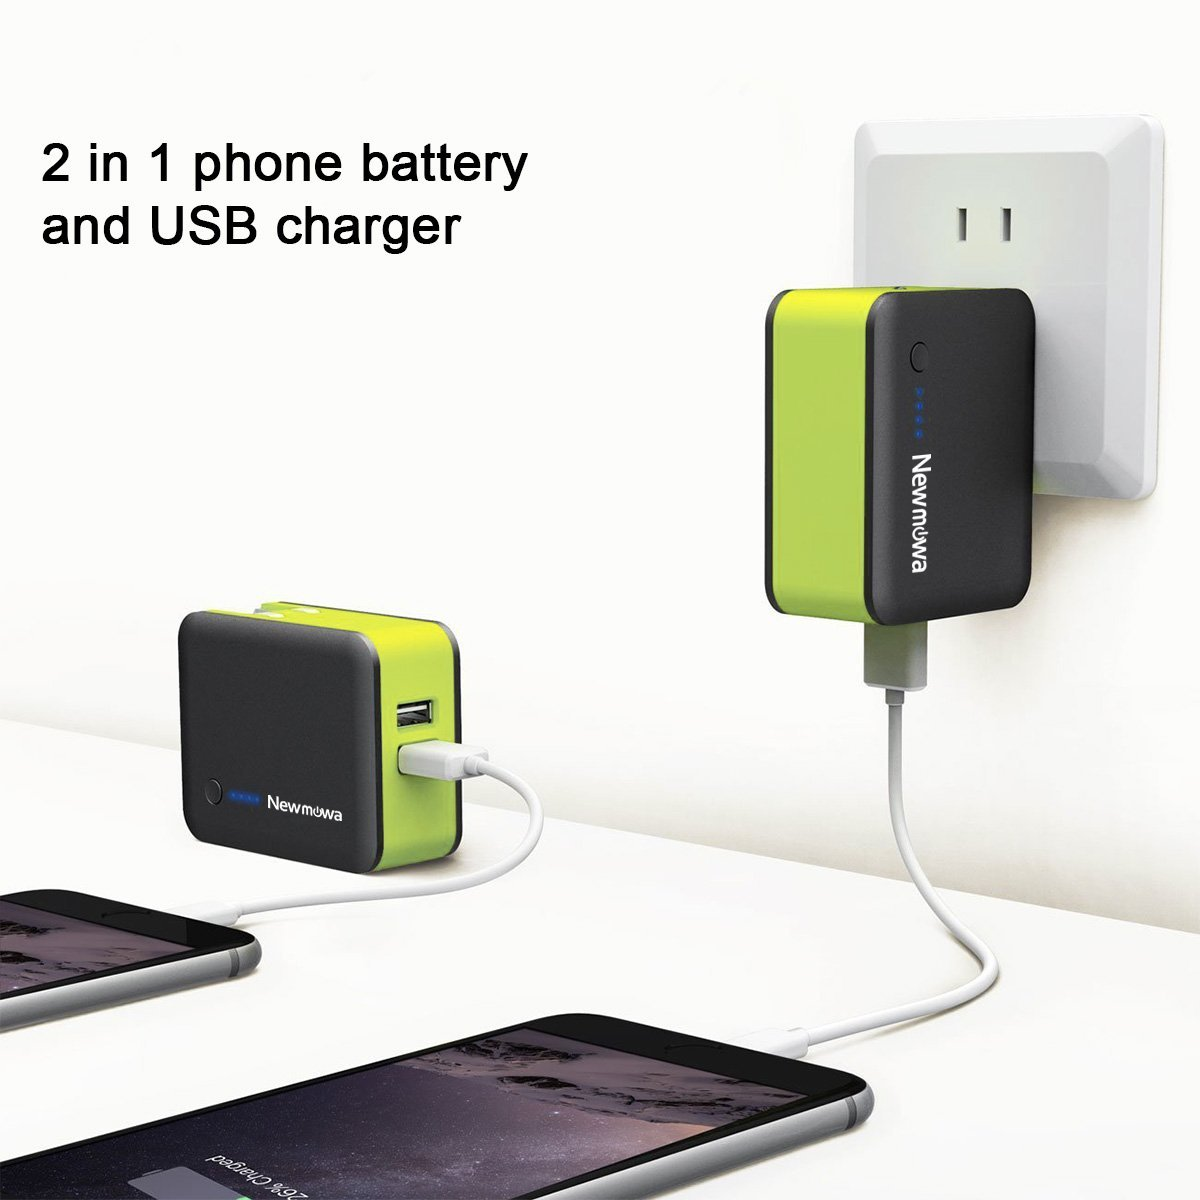 Newmowa 2-in-1 Portable Charger and Wall Charger, AC Plug